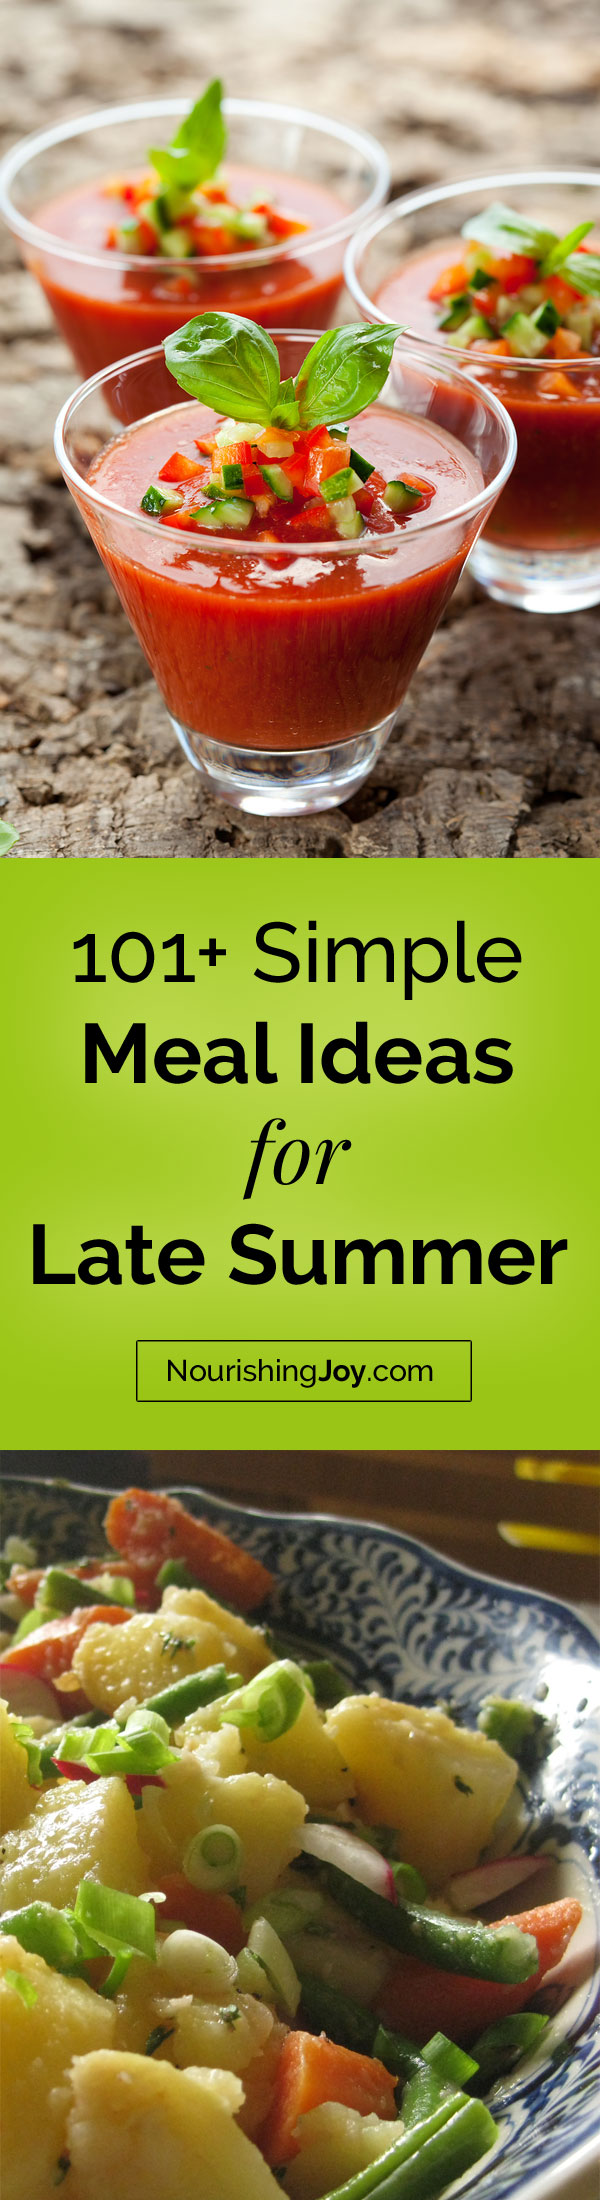 When it's hot and you're lacking inspiration, these simple meal ideas will get you going again until the weather turns cool again.